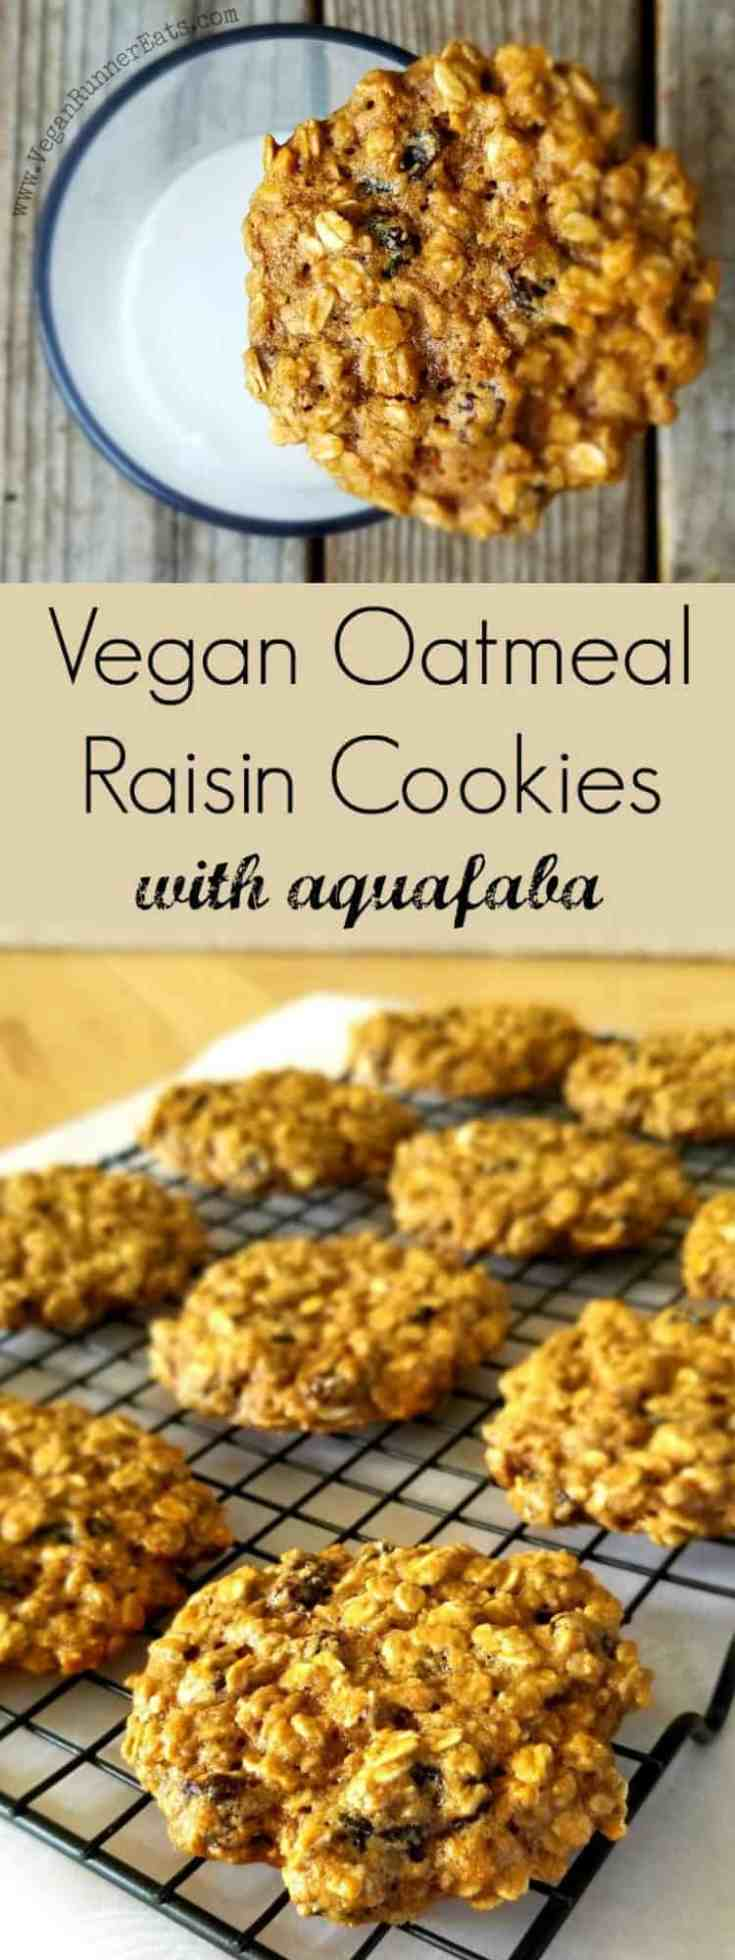 These healthy vegan oatmeal raisin cookies are made with aquafaba, which binds all ingredients without weighing them down. A perfect cookie recipe for dairy-free, egg-free, nut-free diets | vegan oatmeal raisin cookie recipe | healthy oatmeal raisin cookies | healthy oatmeal cookies | vegan cookie recipes | dairy-free cookie recipes | egg-free cookie recipes | vegan recipes | vegan recipe ideas | #veganoatmealraisincookies #oatmealraisincookies #vegancookies #vegancookierecipes #veganrecipeideas